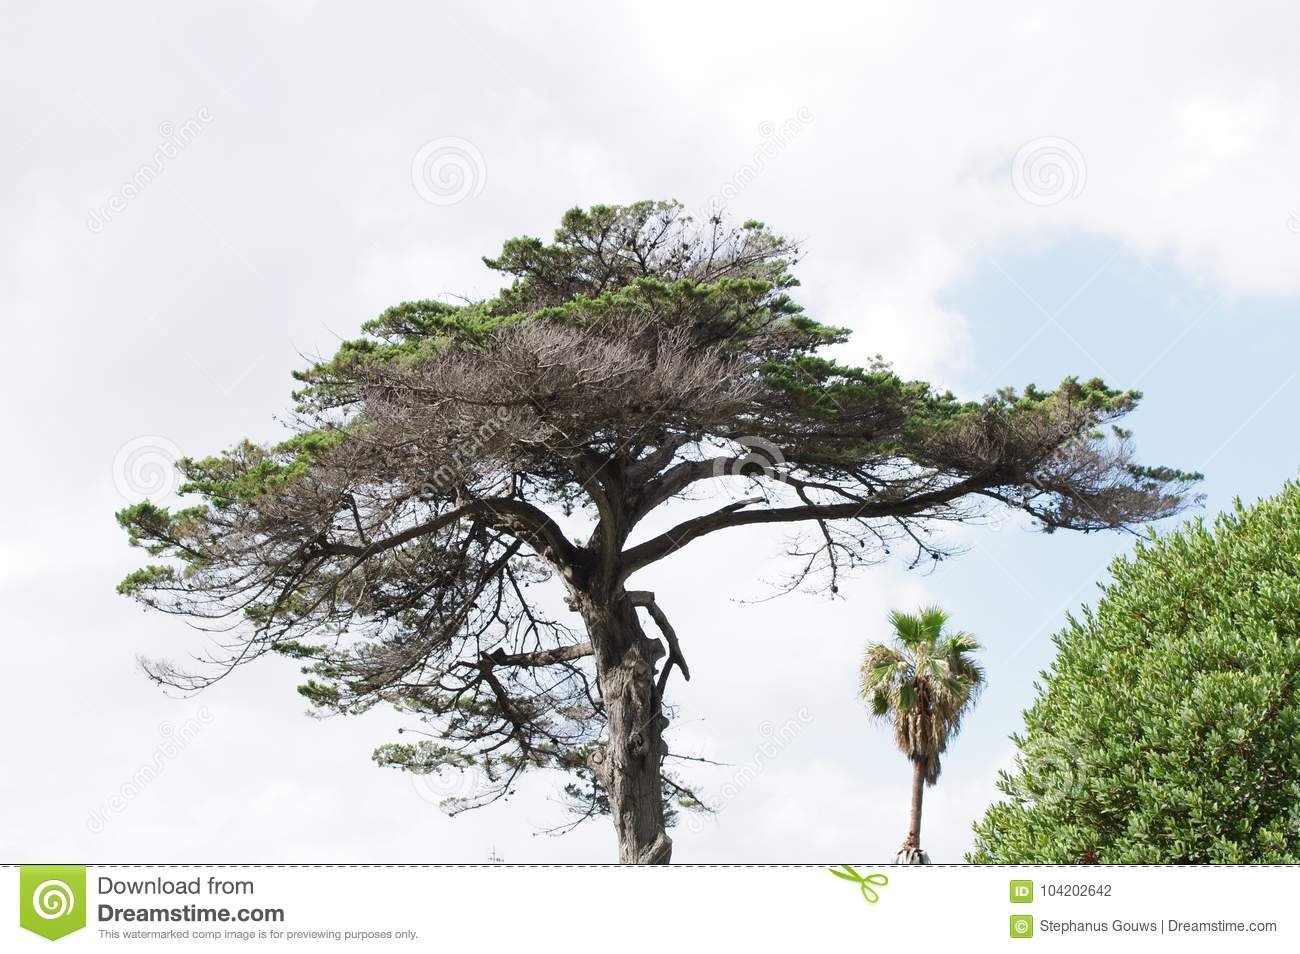 Umbrella-like pine tree with dry leaves and branches silhouetted against blue sky